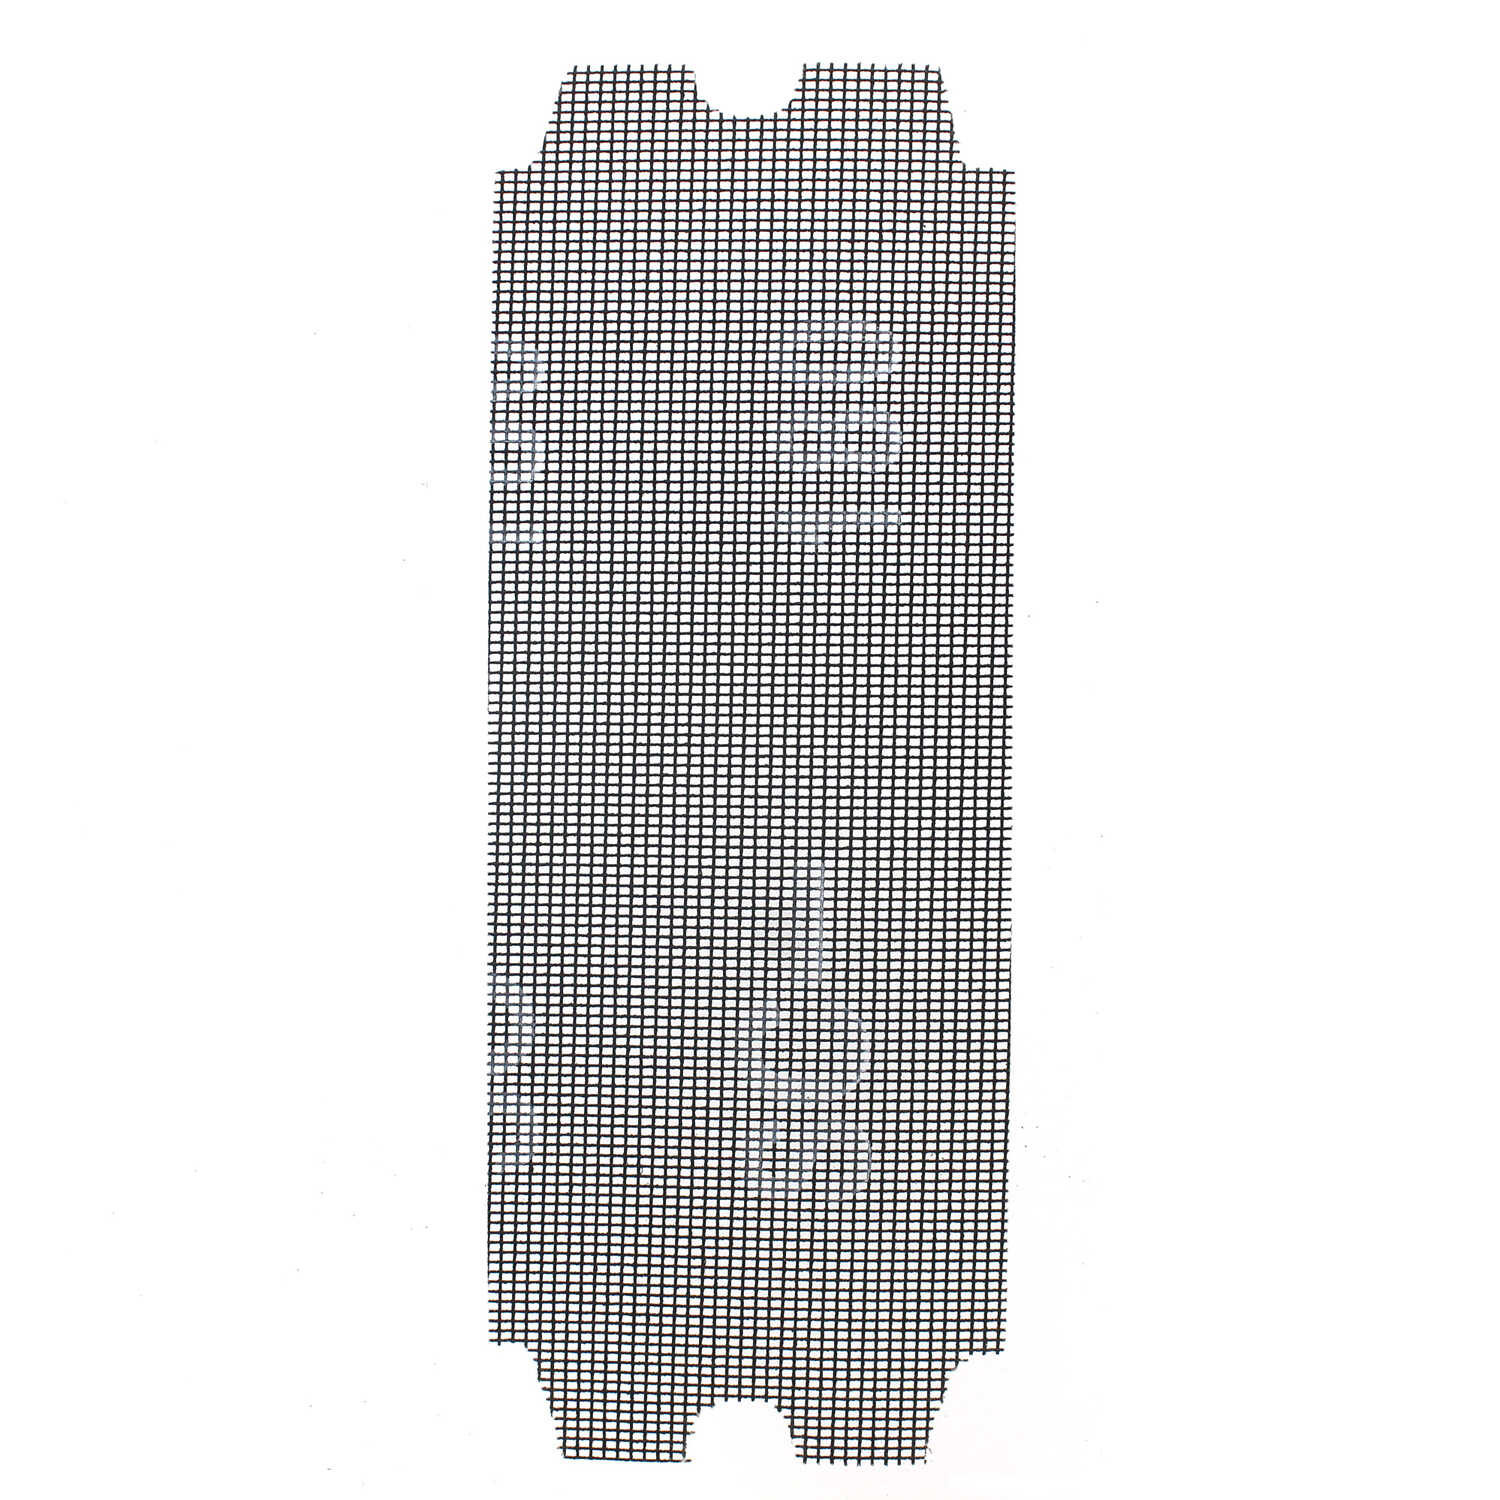 Gator  11-1/4 in. L x 4-1/4 in. W 180 Grit Very Fine  Silicon Carbide  Drywall Sanding Screen  1 pc.